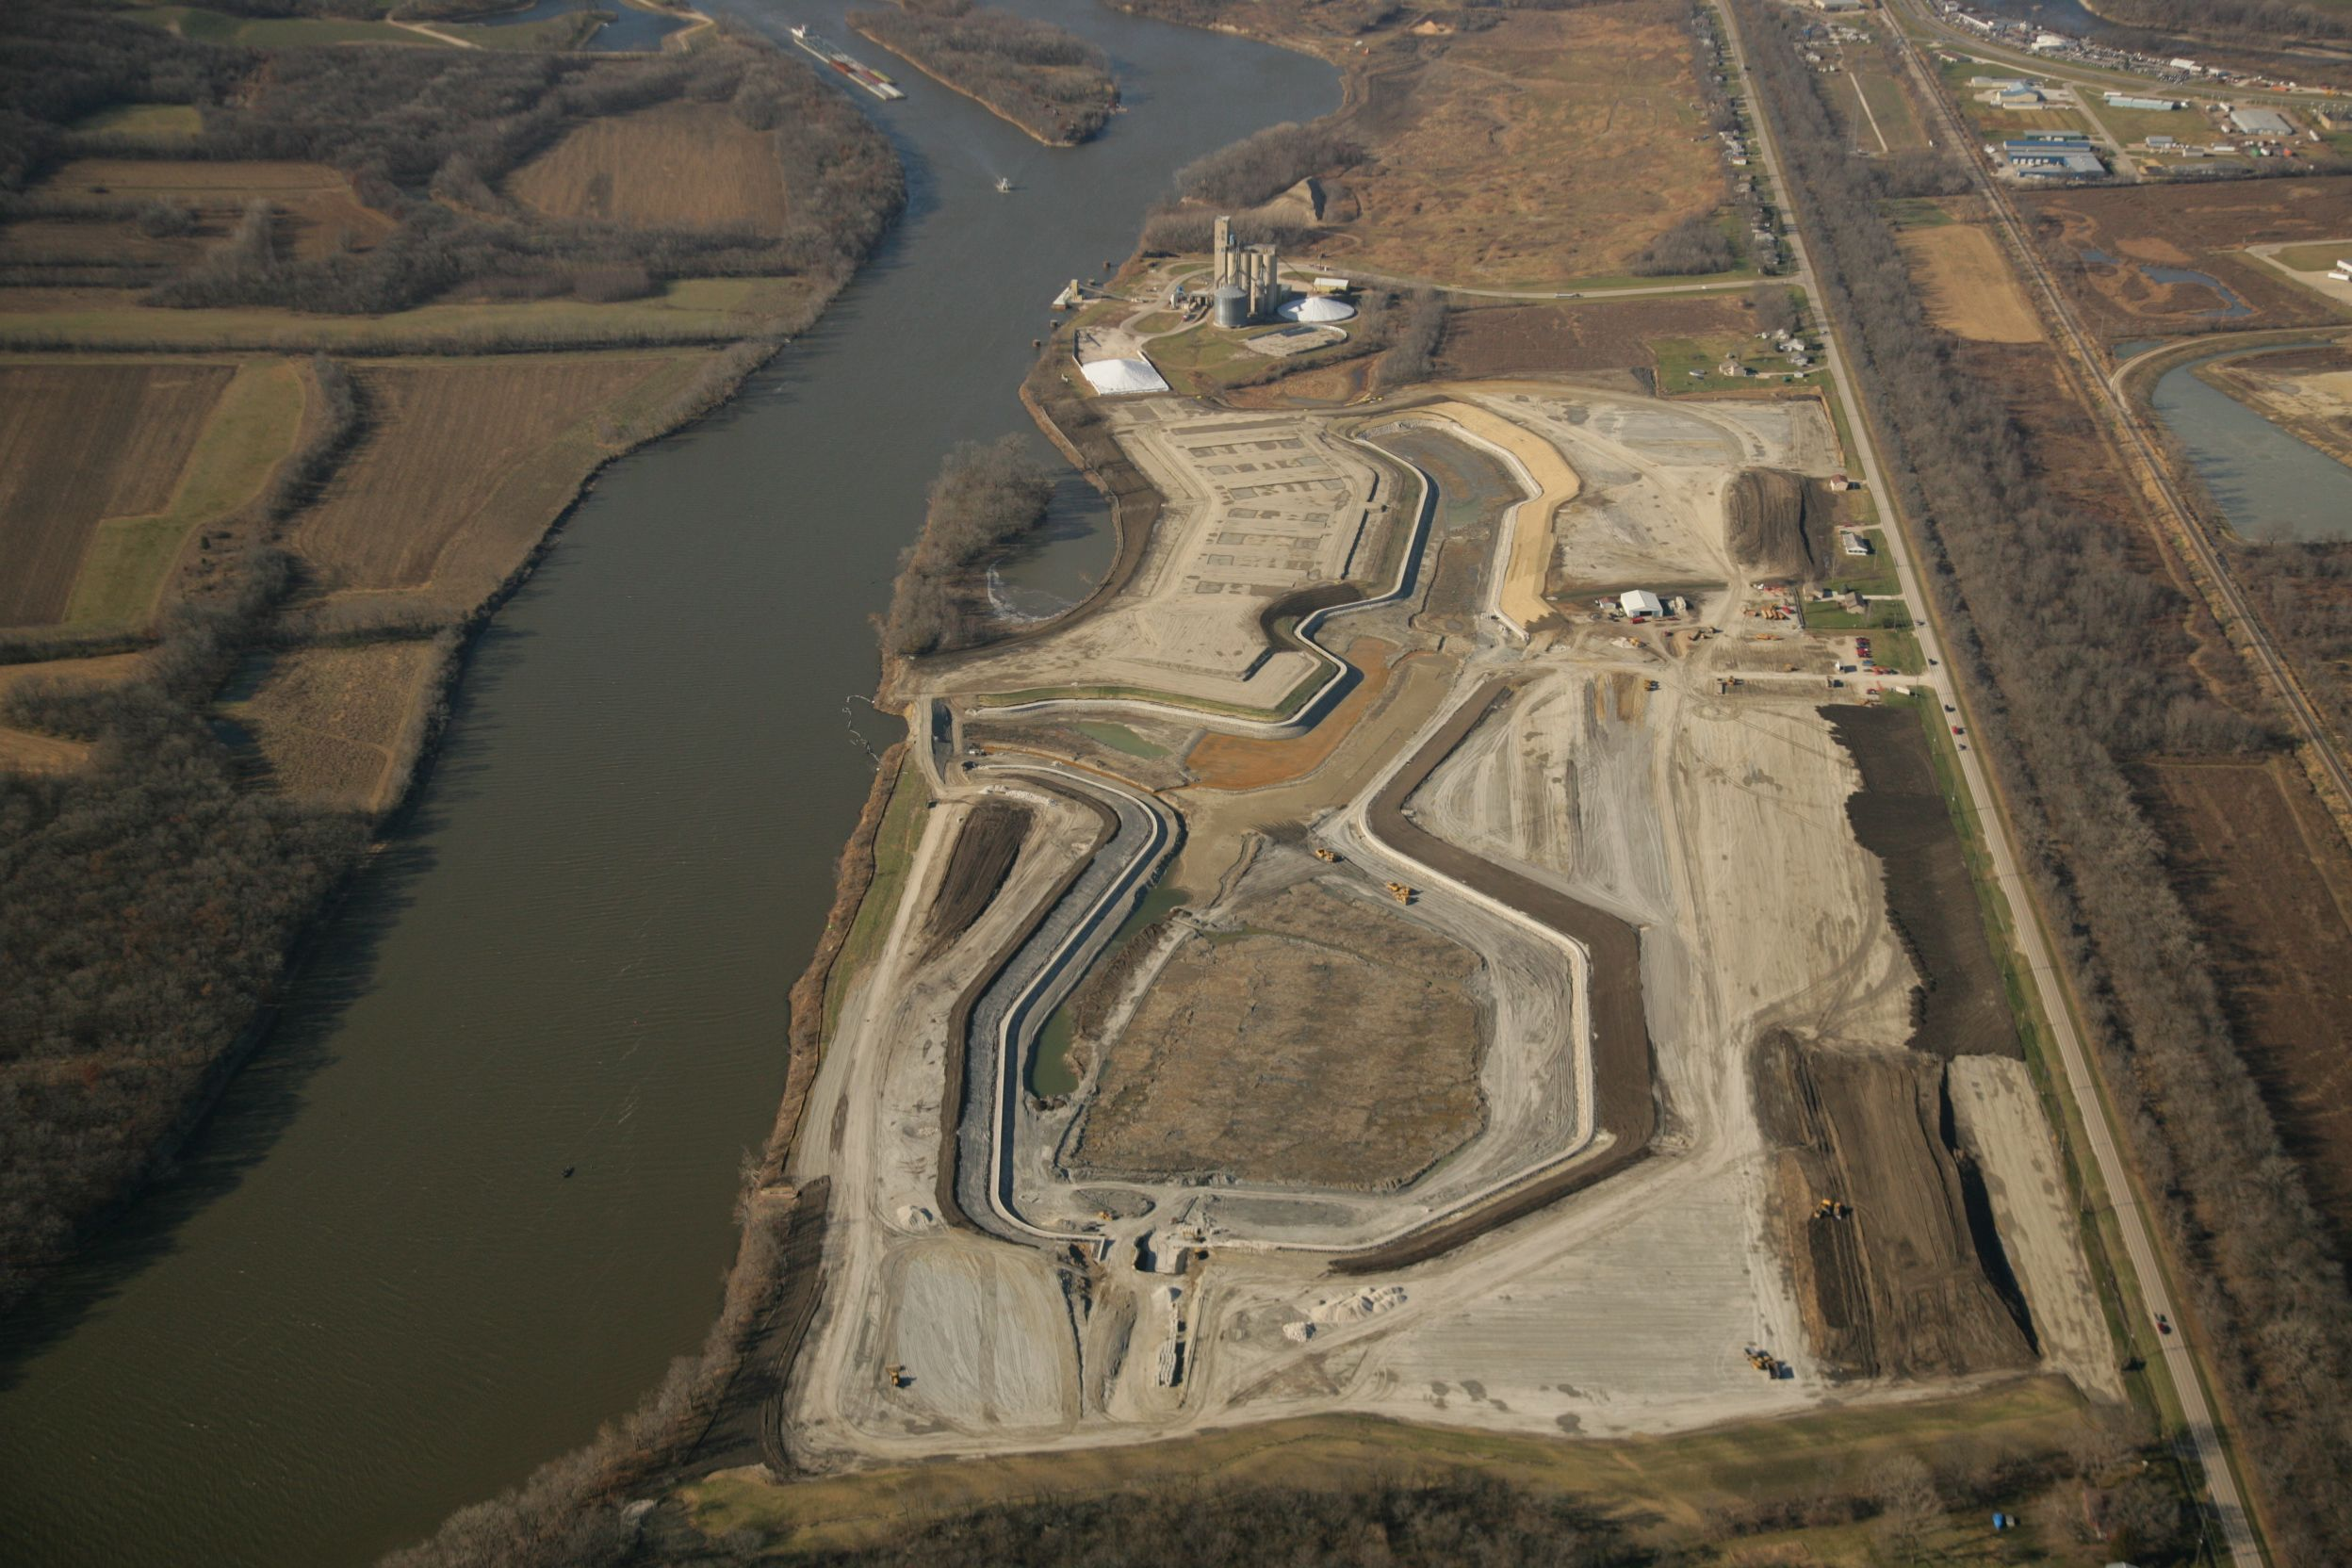 Aerial view of Heritage Harbor project